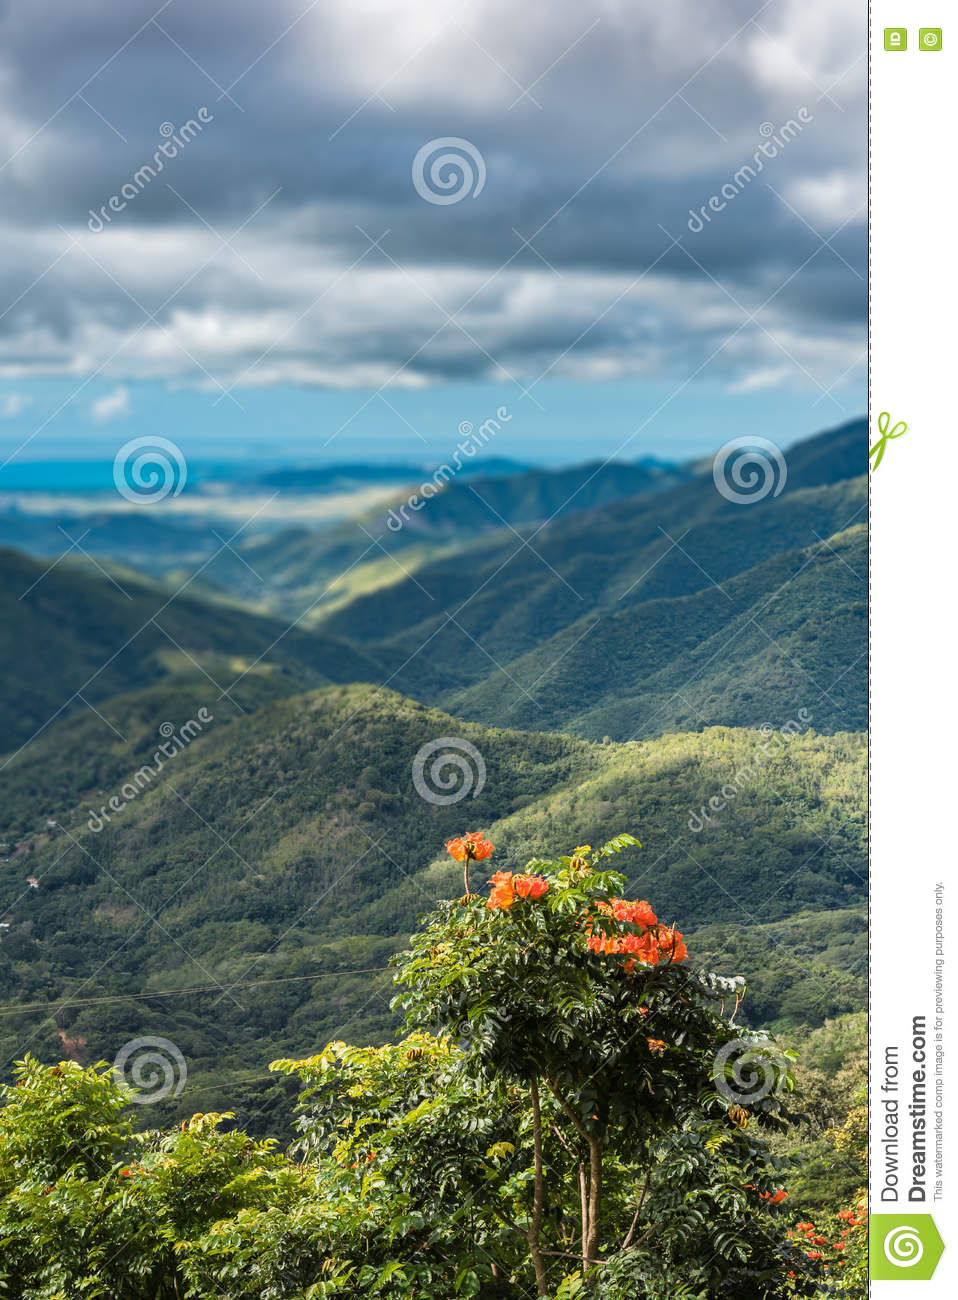 Wild orange flowers with shallow background of rolling hills